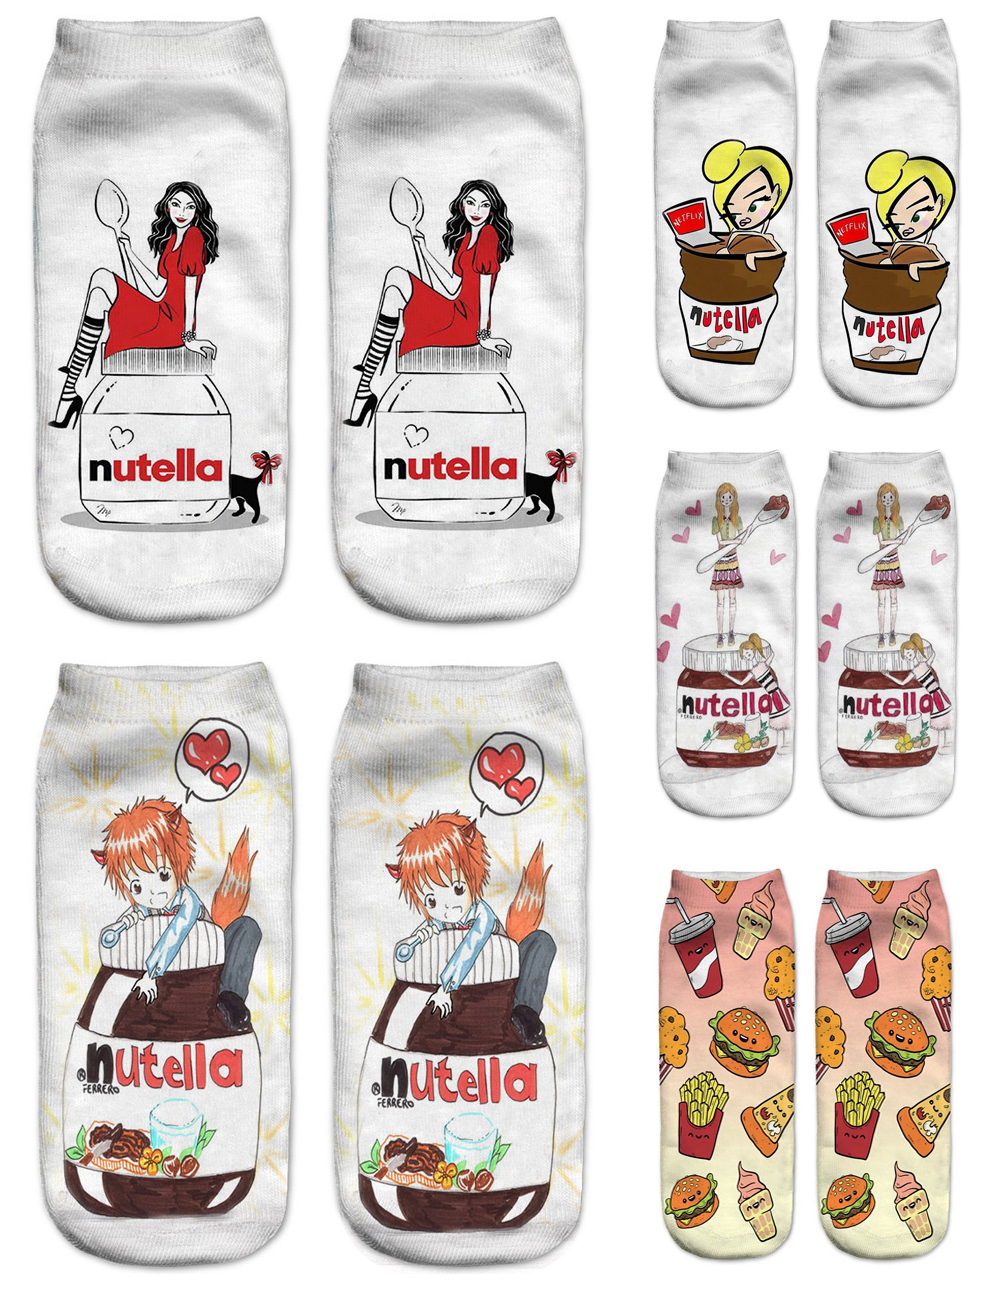 Women 3D Printed Socks Spring Summer Nutella Pizza Funny Short Hot Happy Cotton Fashionable Female Casual Ankle Socks